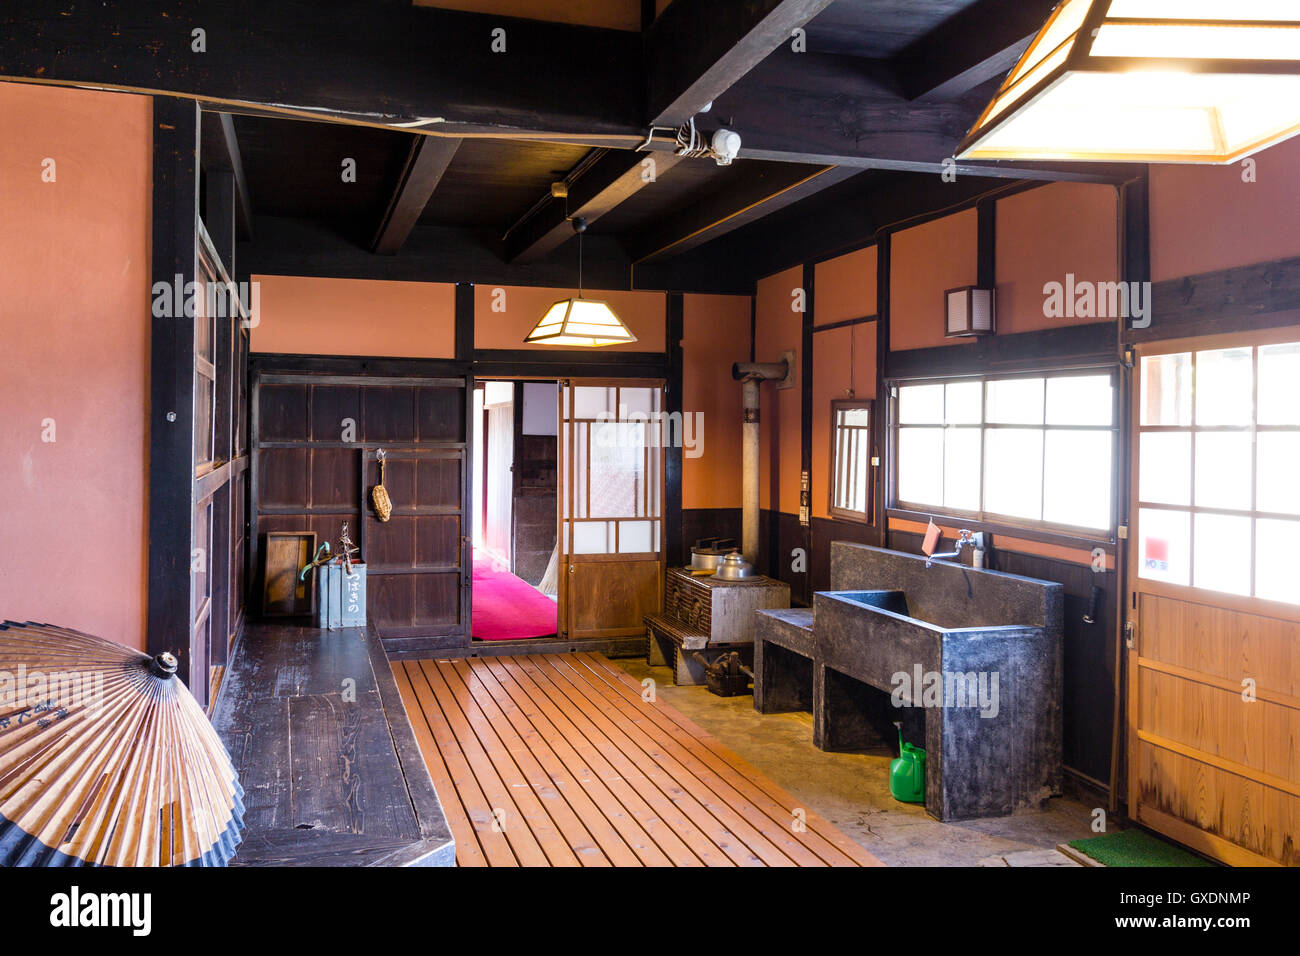 Japan, Izushi. Izushi Shiryokan museum, interior. Typical Merchant's house from the Meiji period. Ground floor - Stock Image